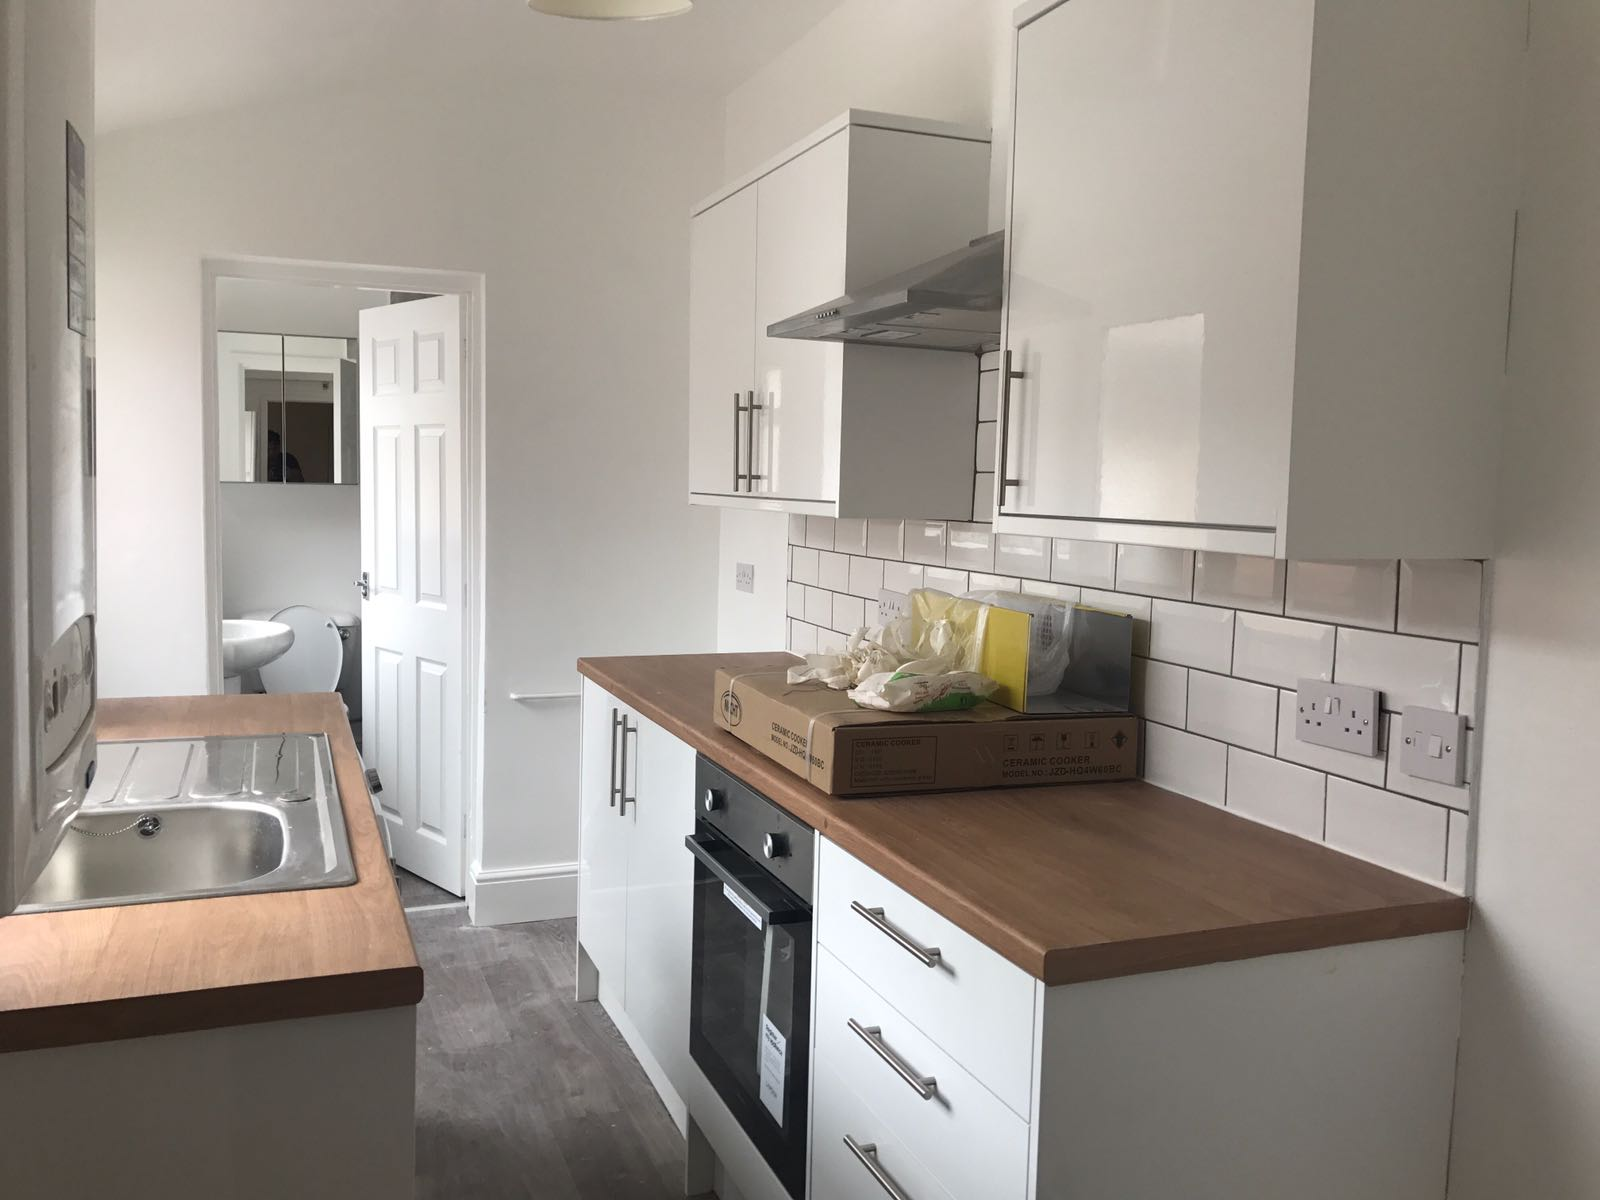 Sincil Bank – 4 Bed [1 BEDROOM AVAILABLE]